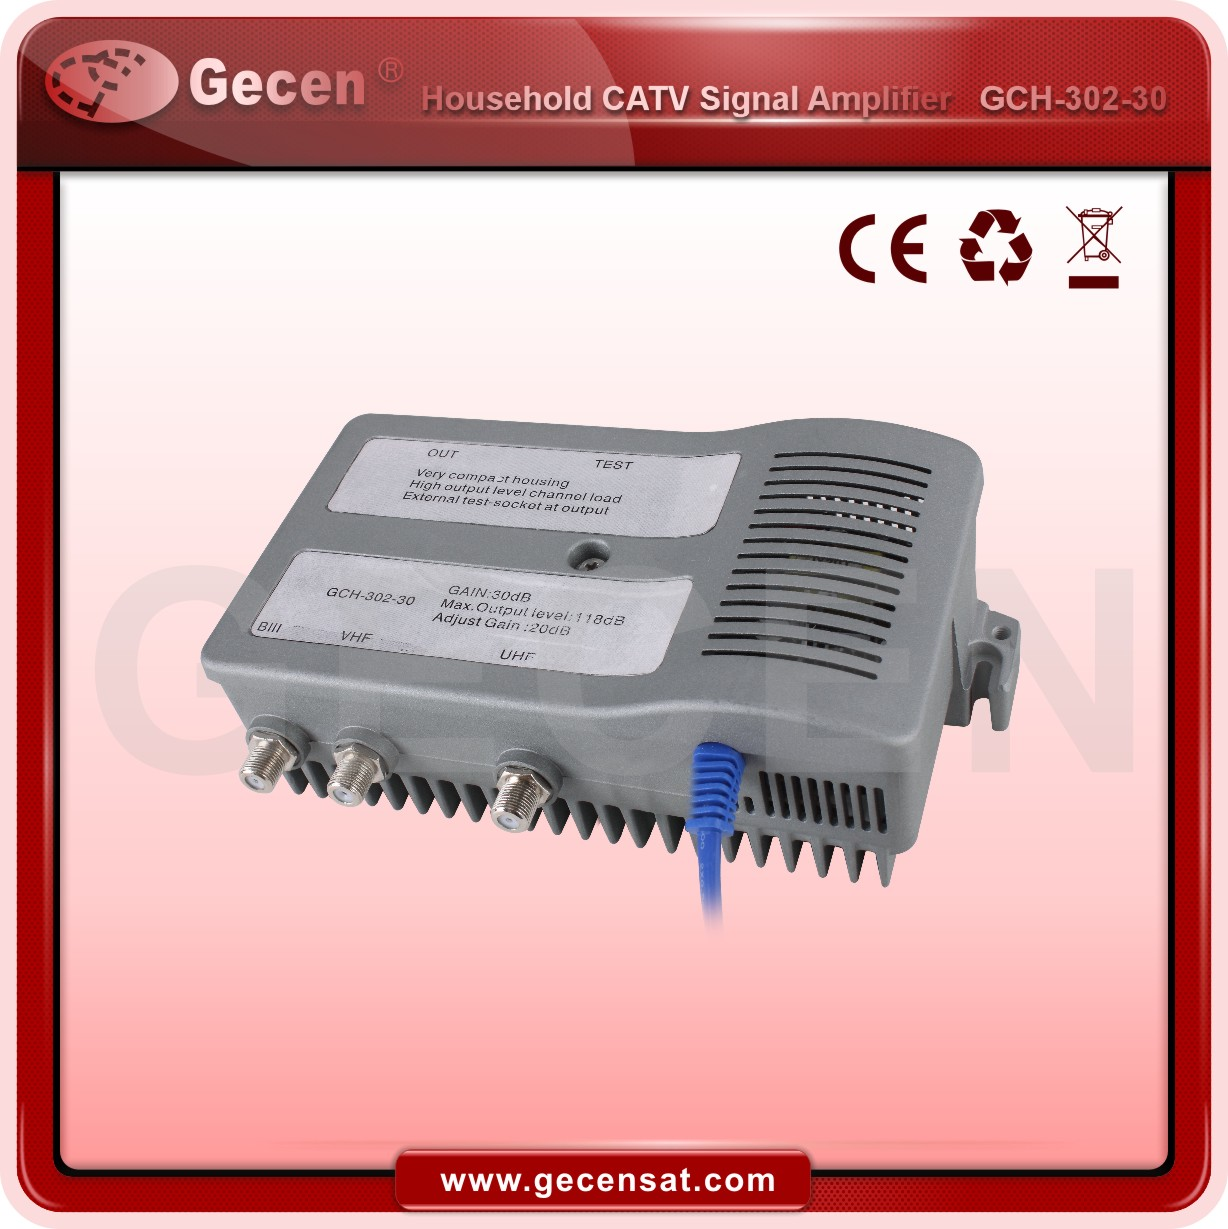 47-860Mhz CATV Amplifier with 30db gain GCH-302-30